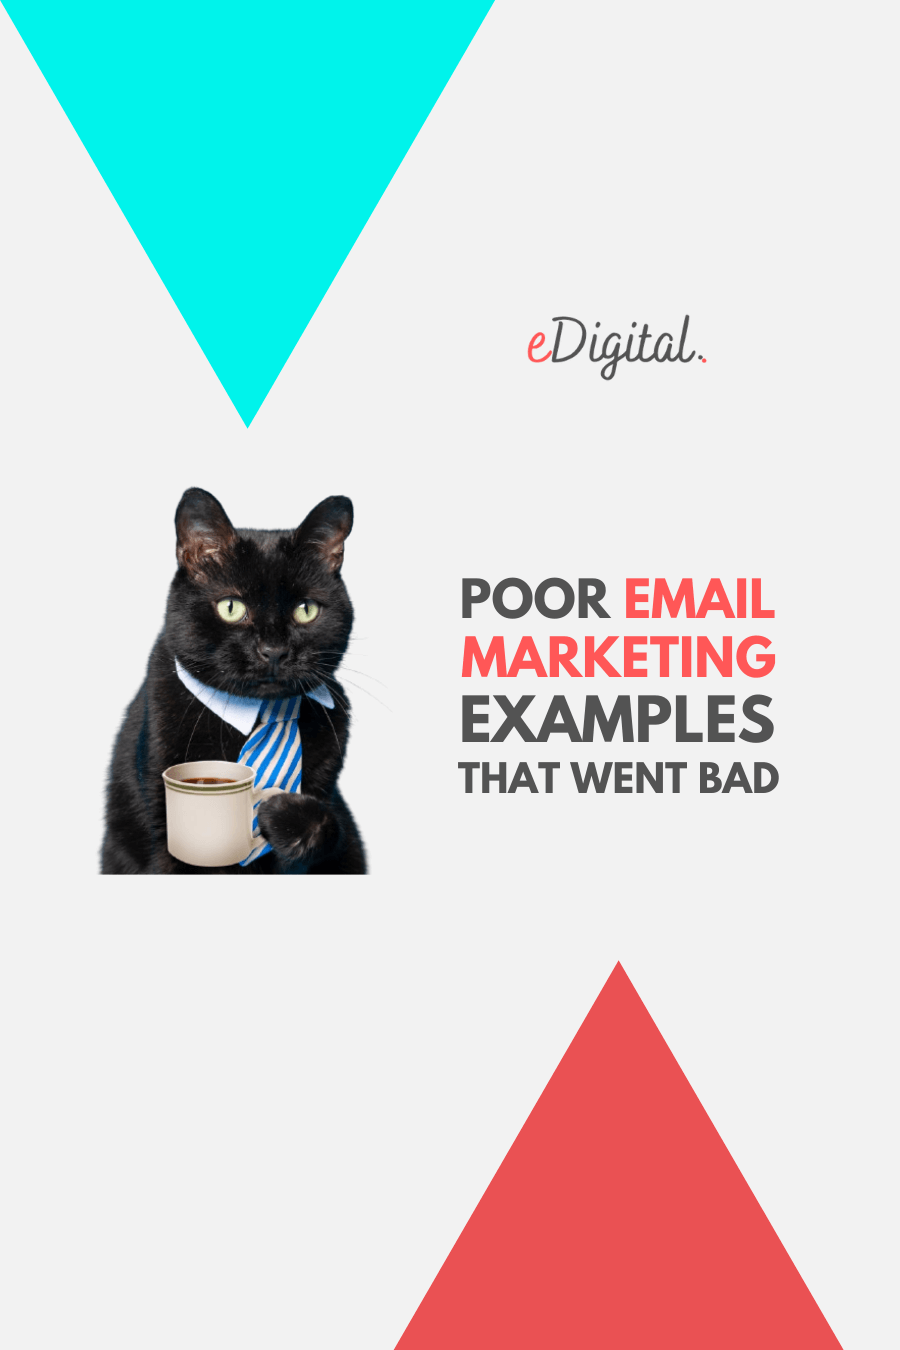 poor email marketing examples that went bad